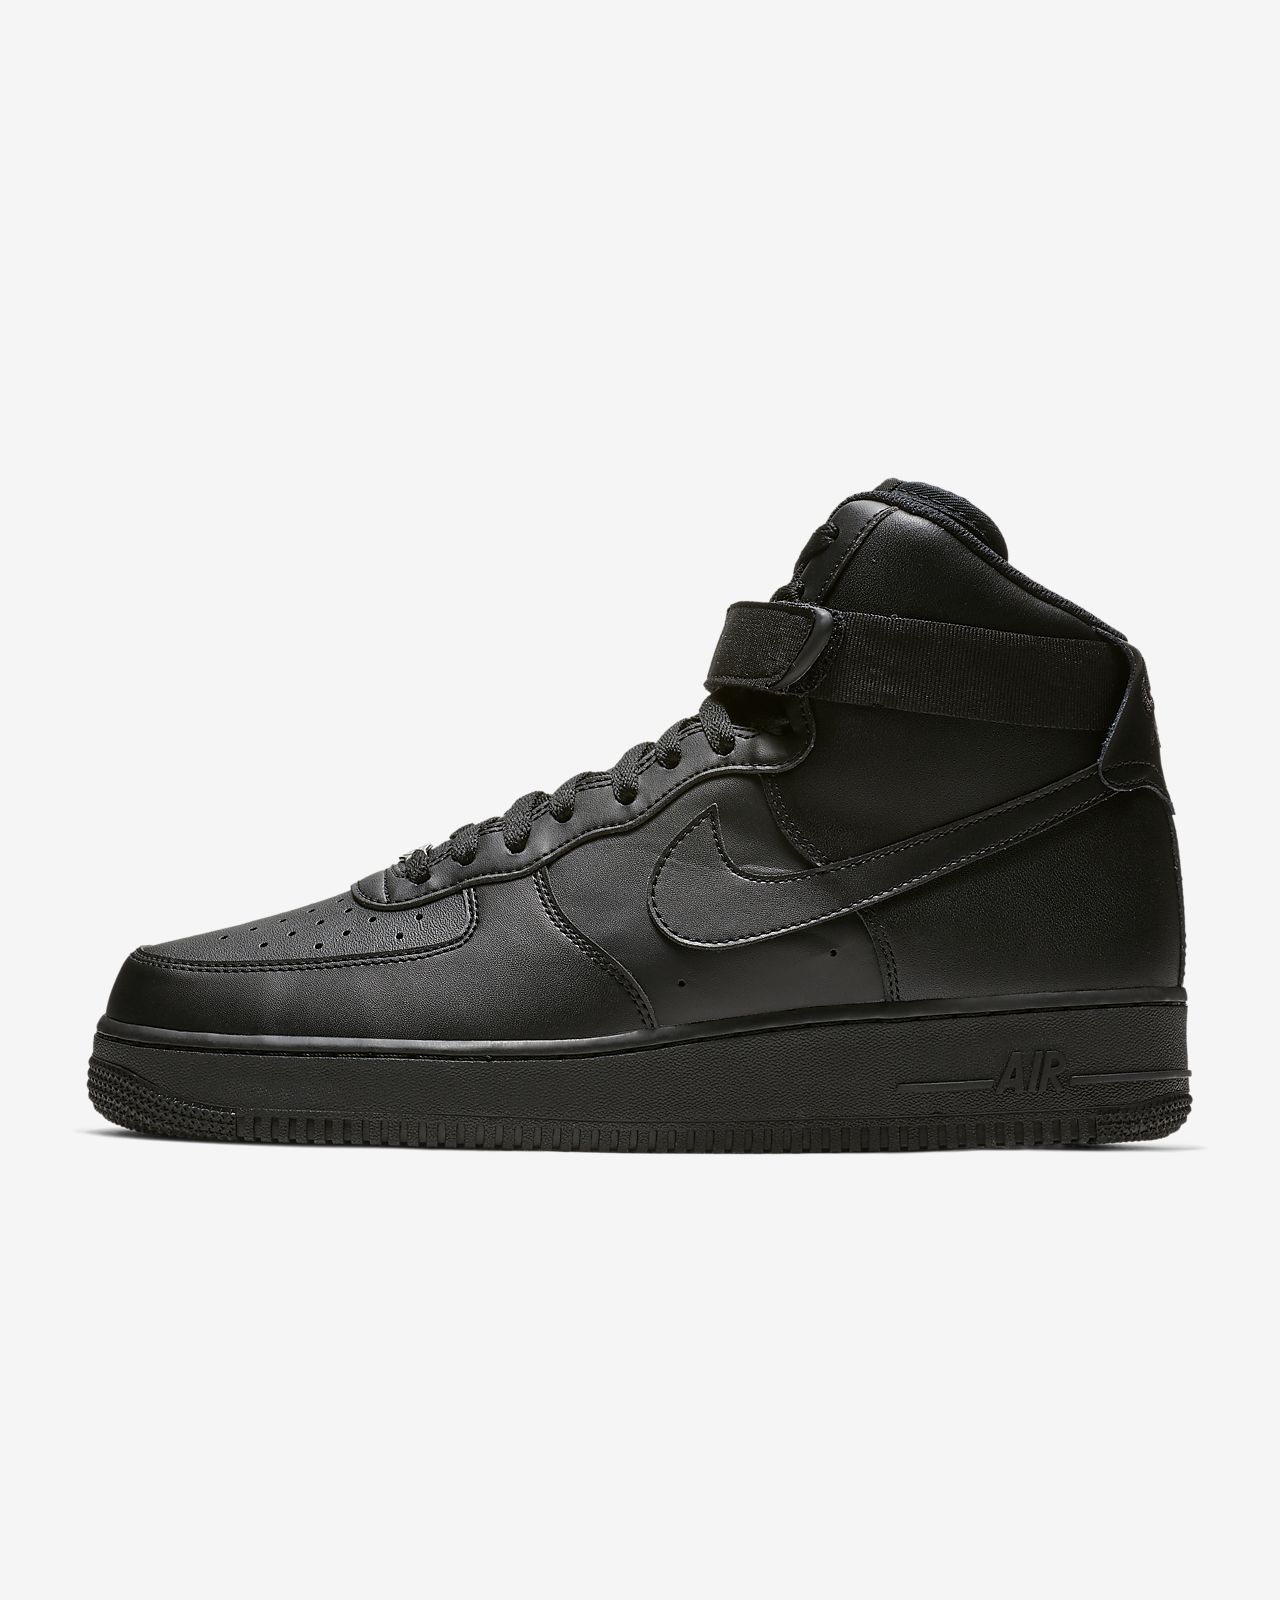 Nike Air Force 1 High 07 Men's Shoe